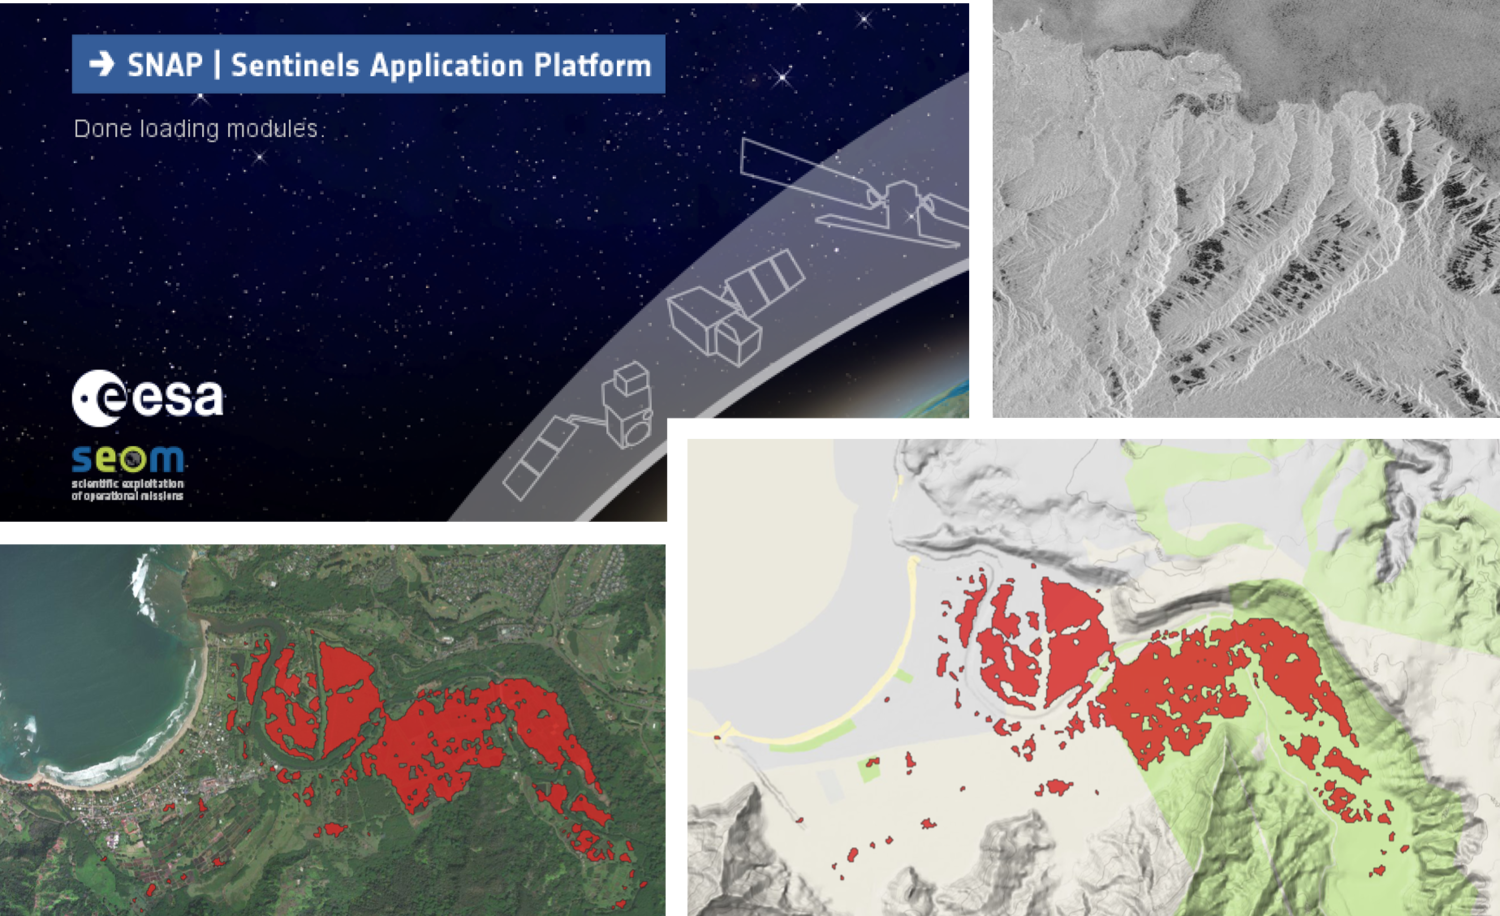 Flood Mapping with Sentinel-1 Data using SNAP and QGIS